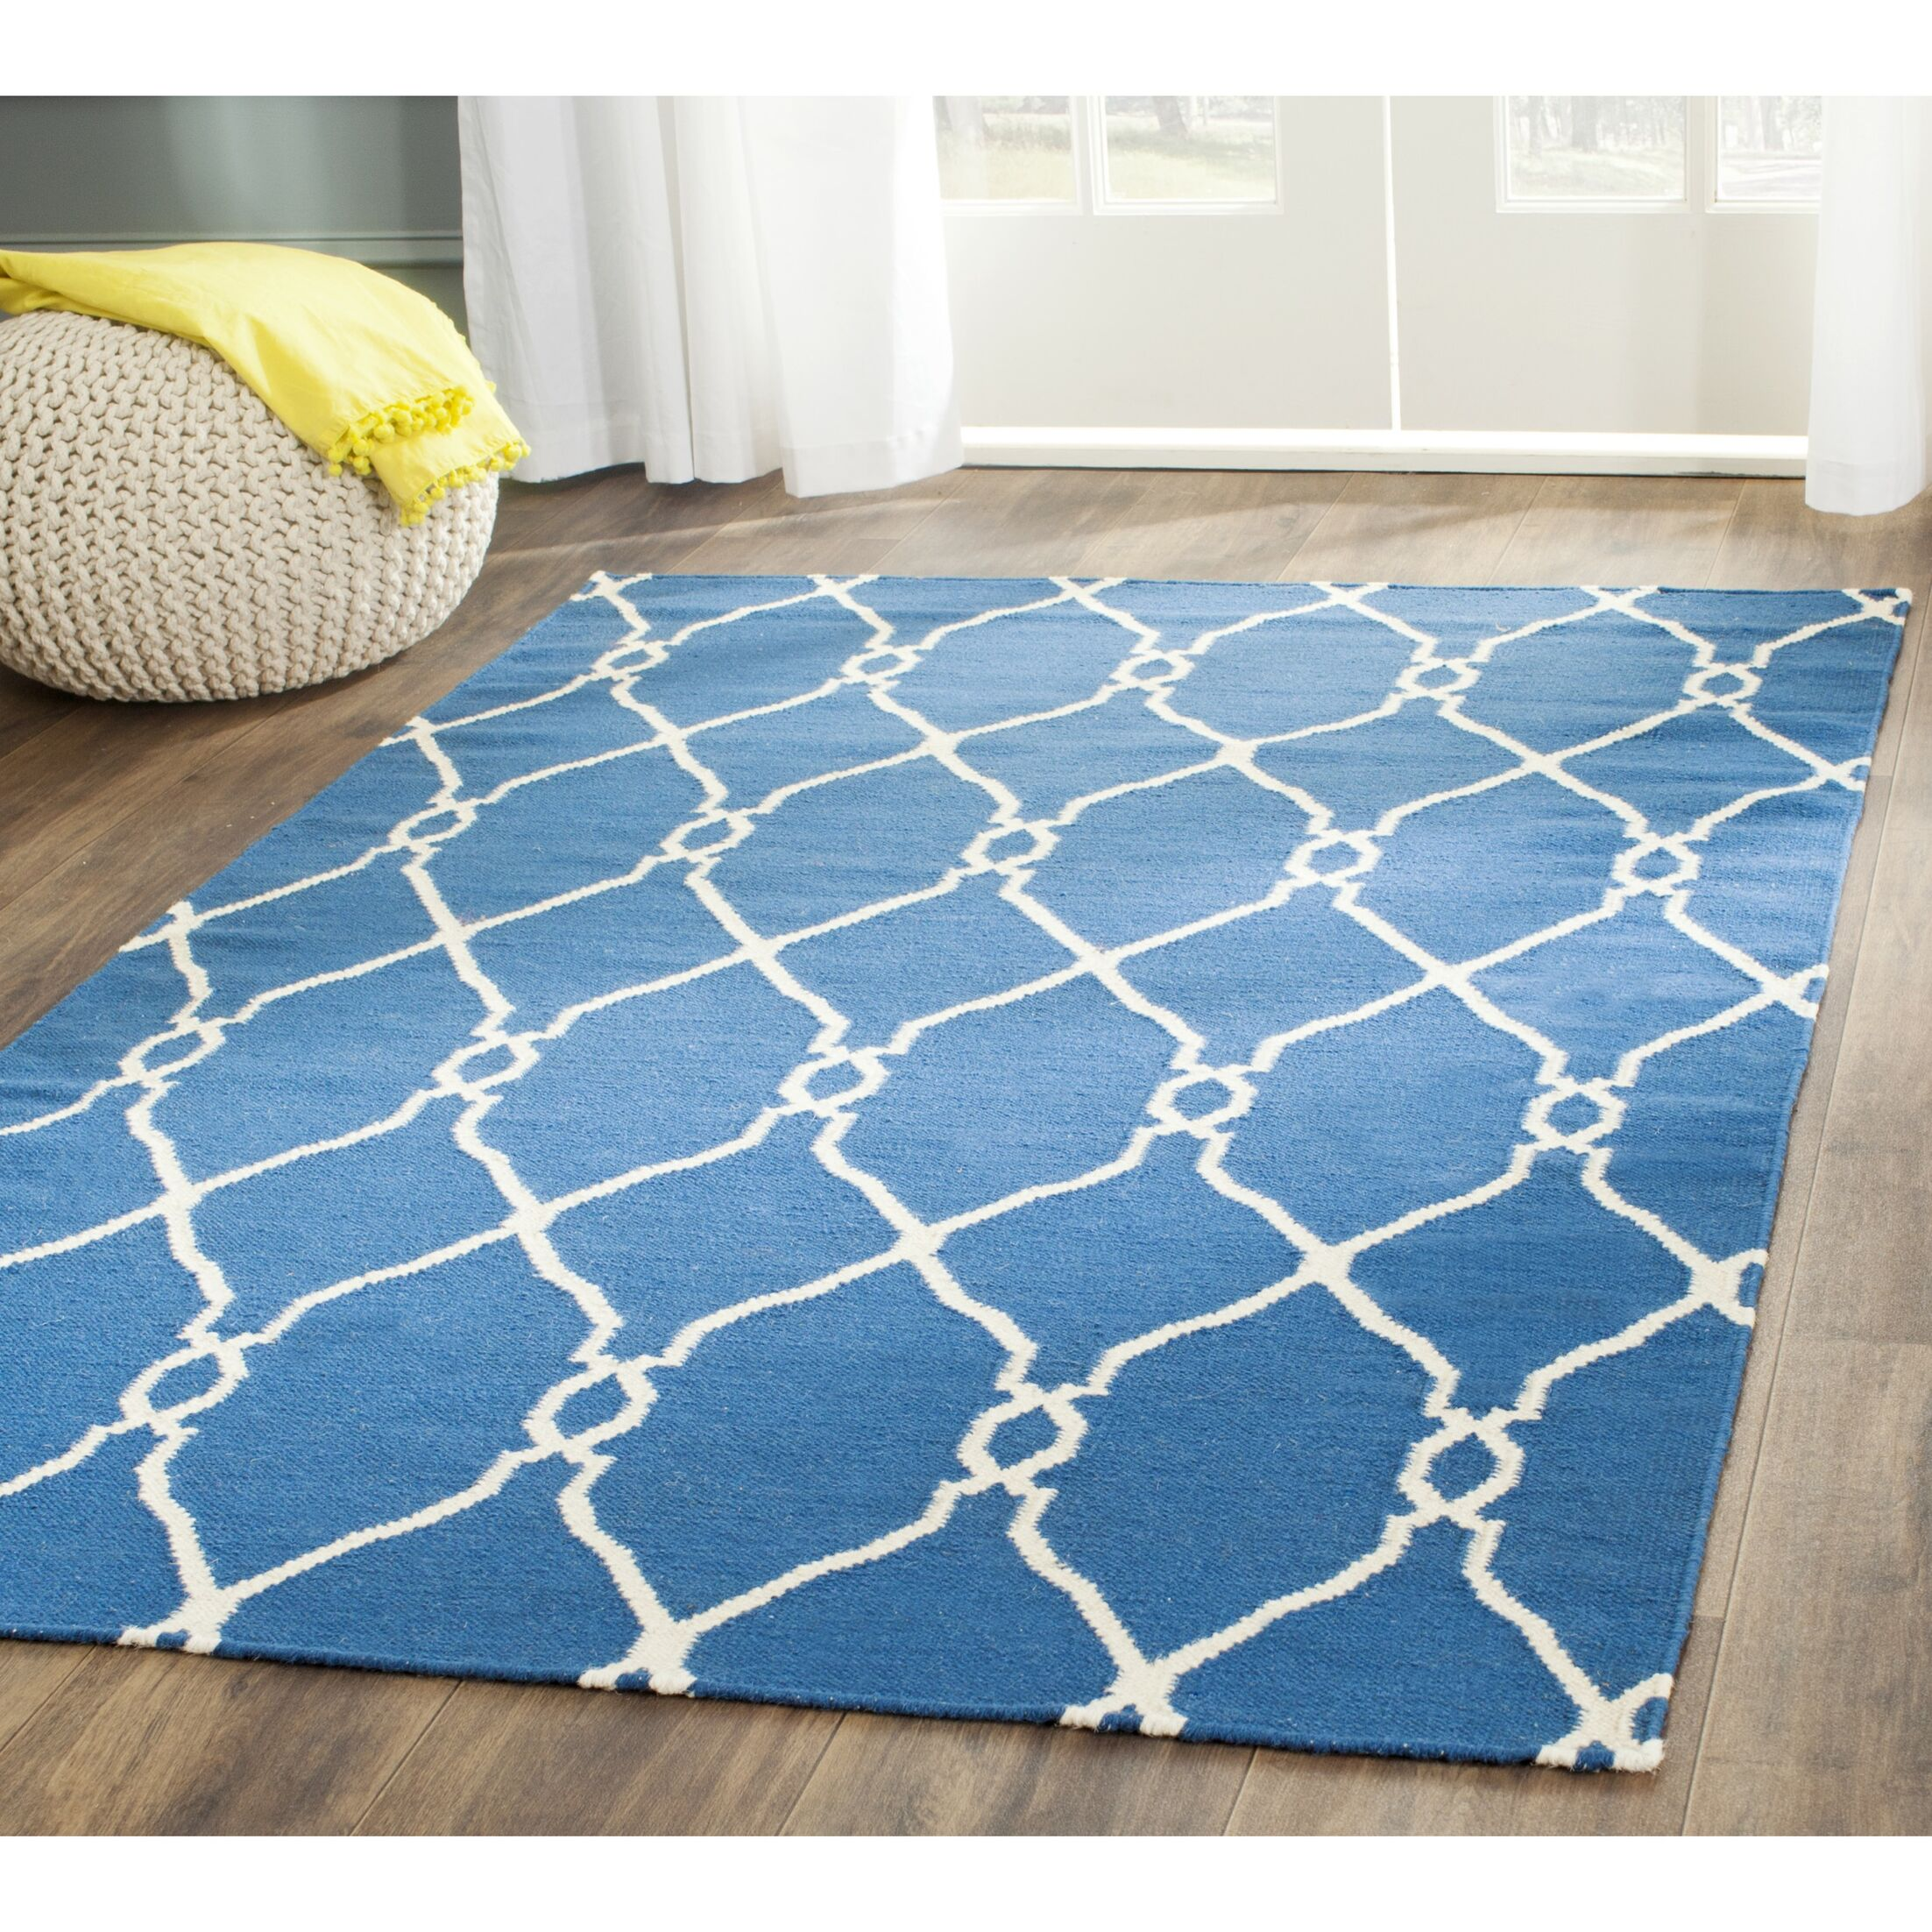 Dhurries Hand-Woven Wool Dark Blue Area Rug Rug Size: Rectangle 6' x 9'